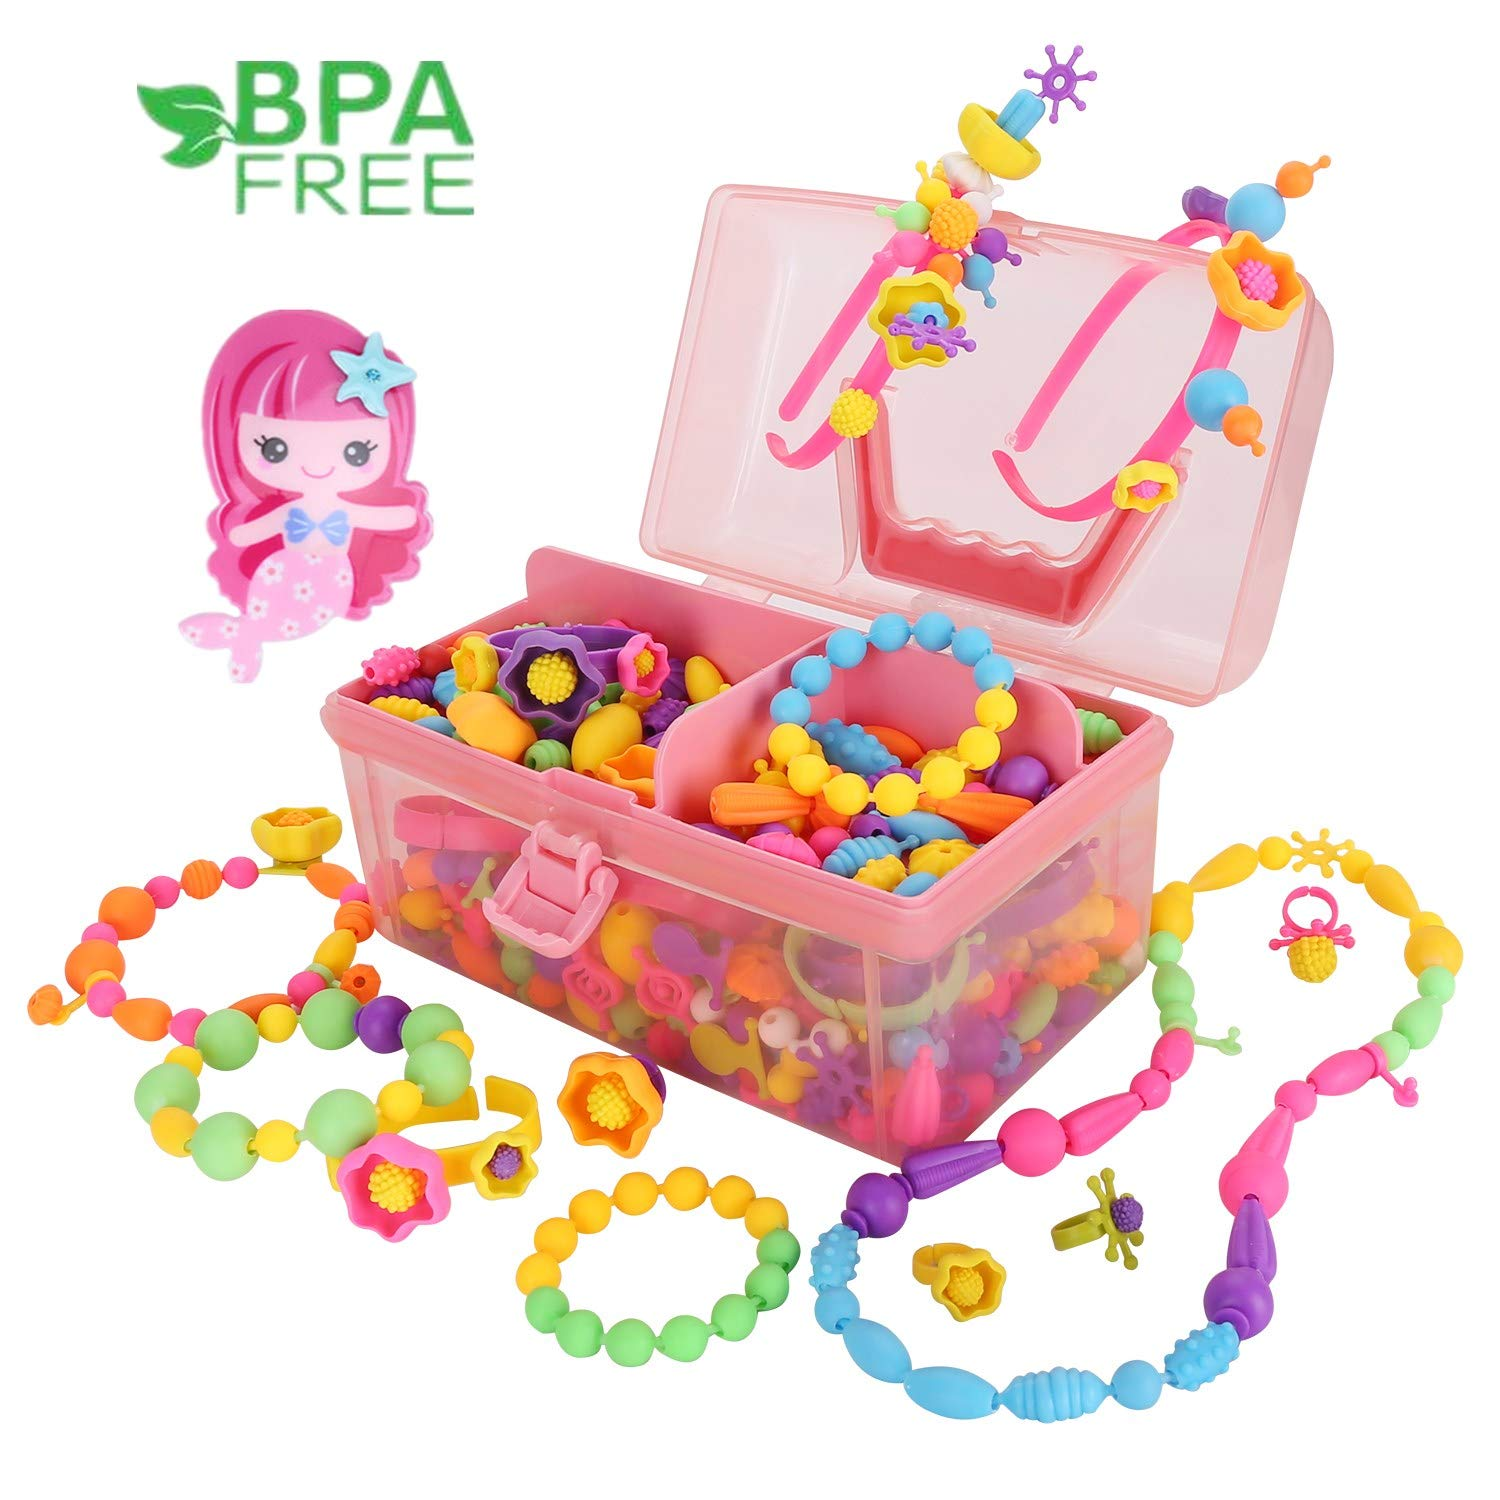 Hairband Necklace Bracelet and Ring Creativity DIY Set,Ideal Christmas Birthday Gifts for Girls Age 4 5 6 7 8 Year Old Kids Toys Conleke Pop Snap Beads with Mermaid Hairpin,Jewelry Making Kit 530PCS